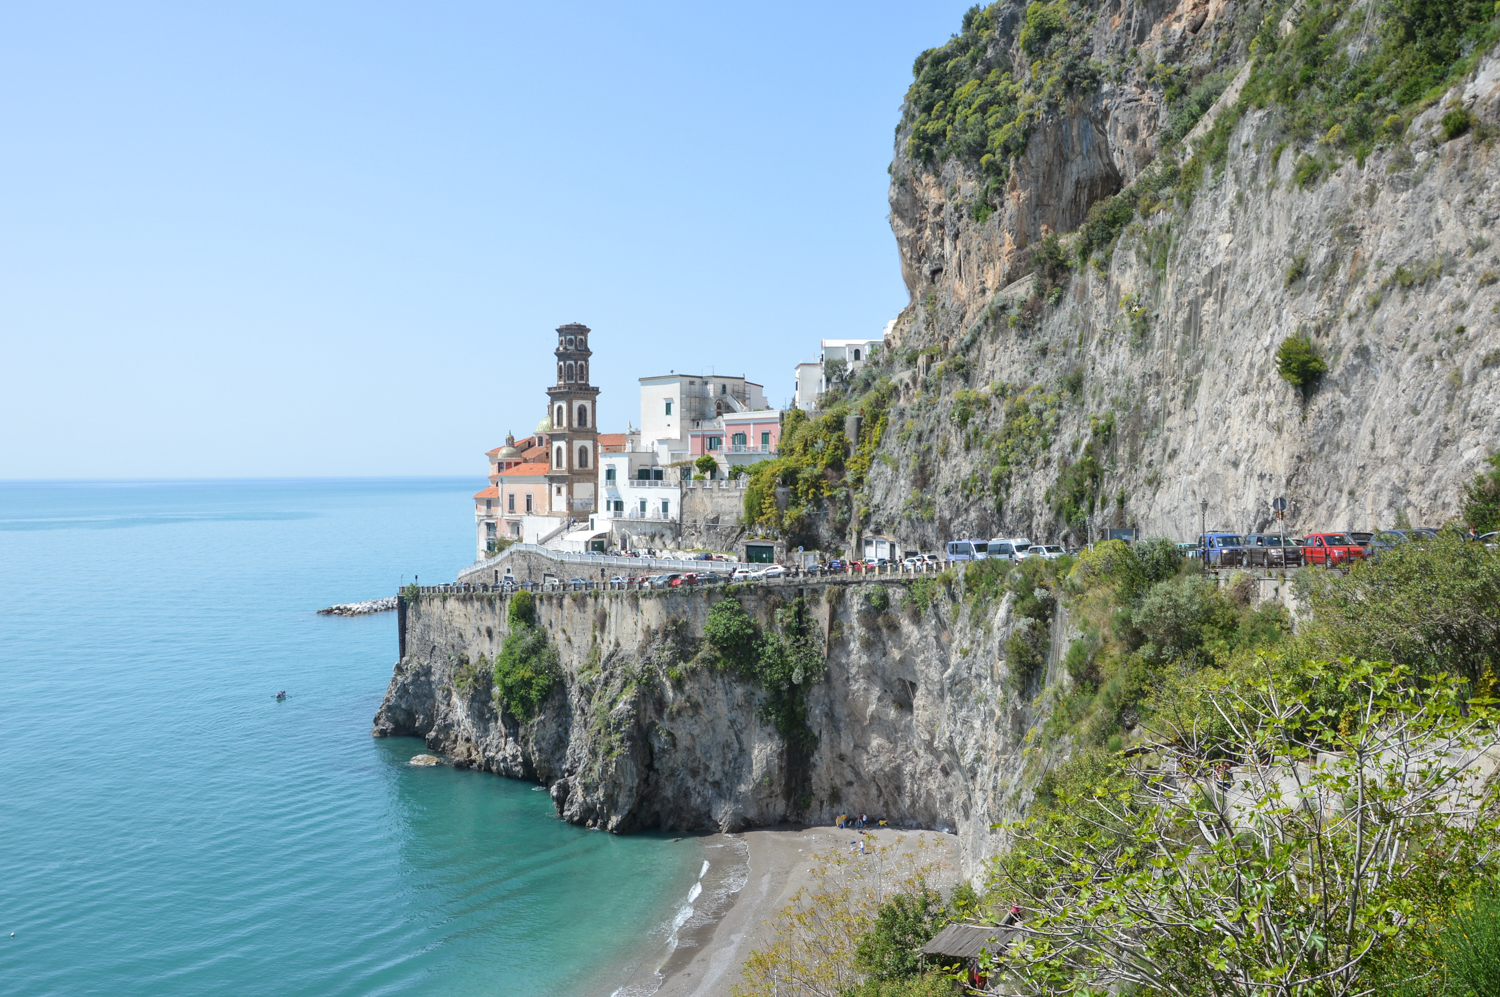 Driving on the Amalfi Coast